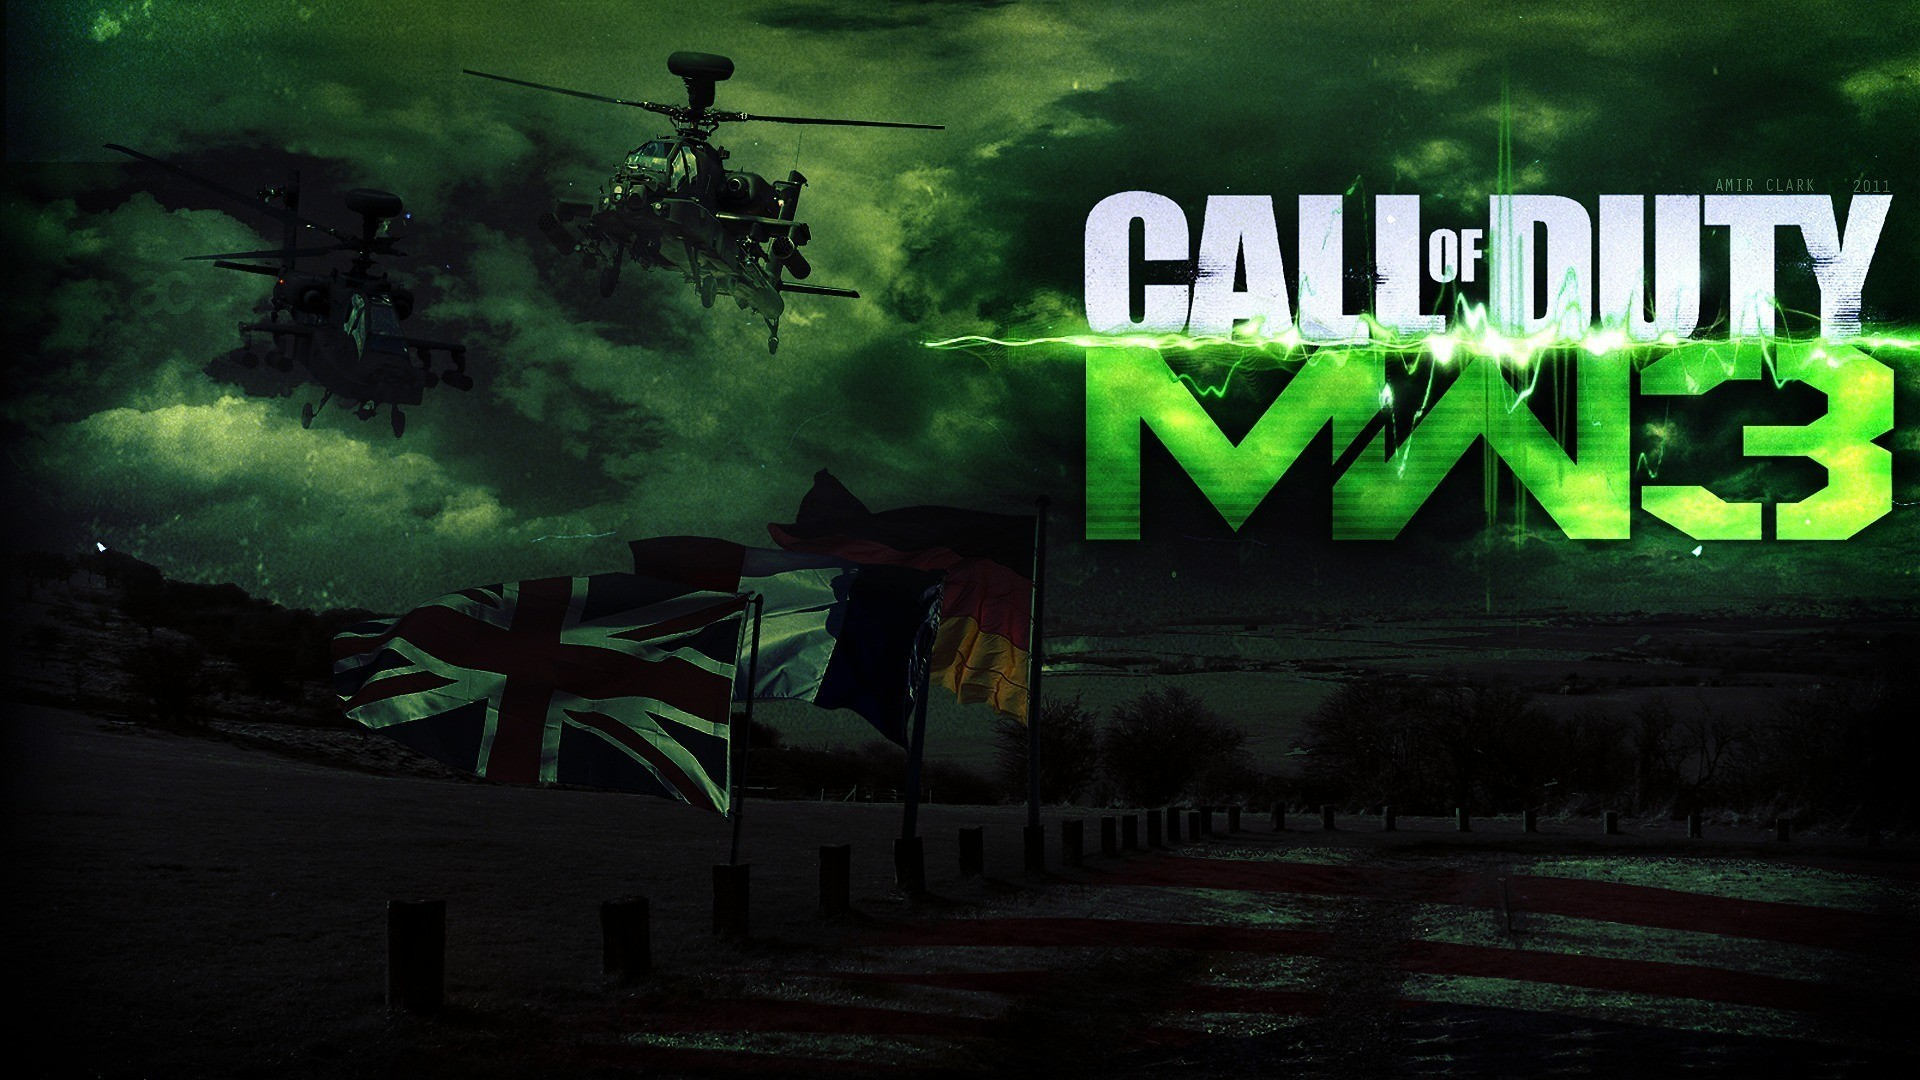 Download Call of Duty MW3 Wallpaper Wallpapers 1920x1080